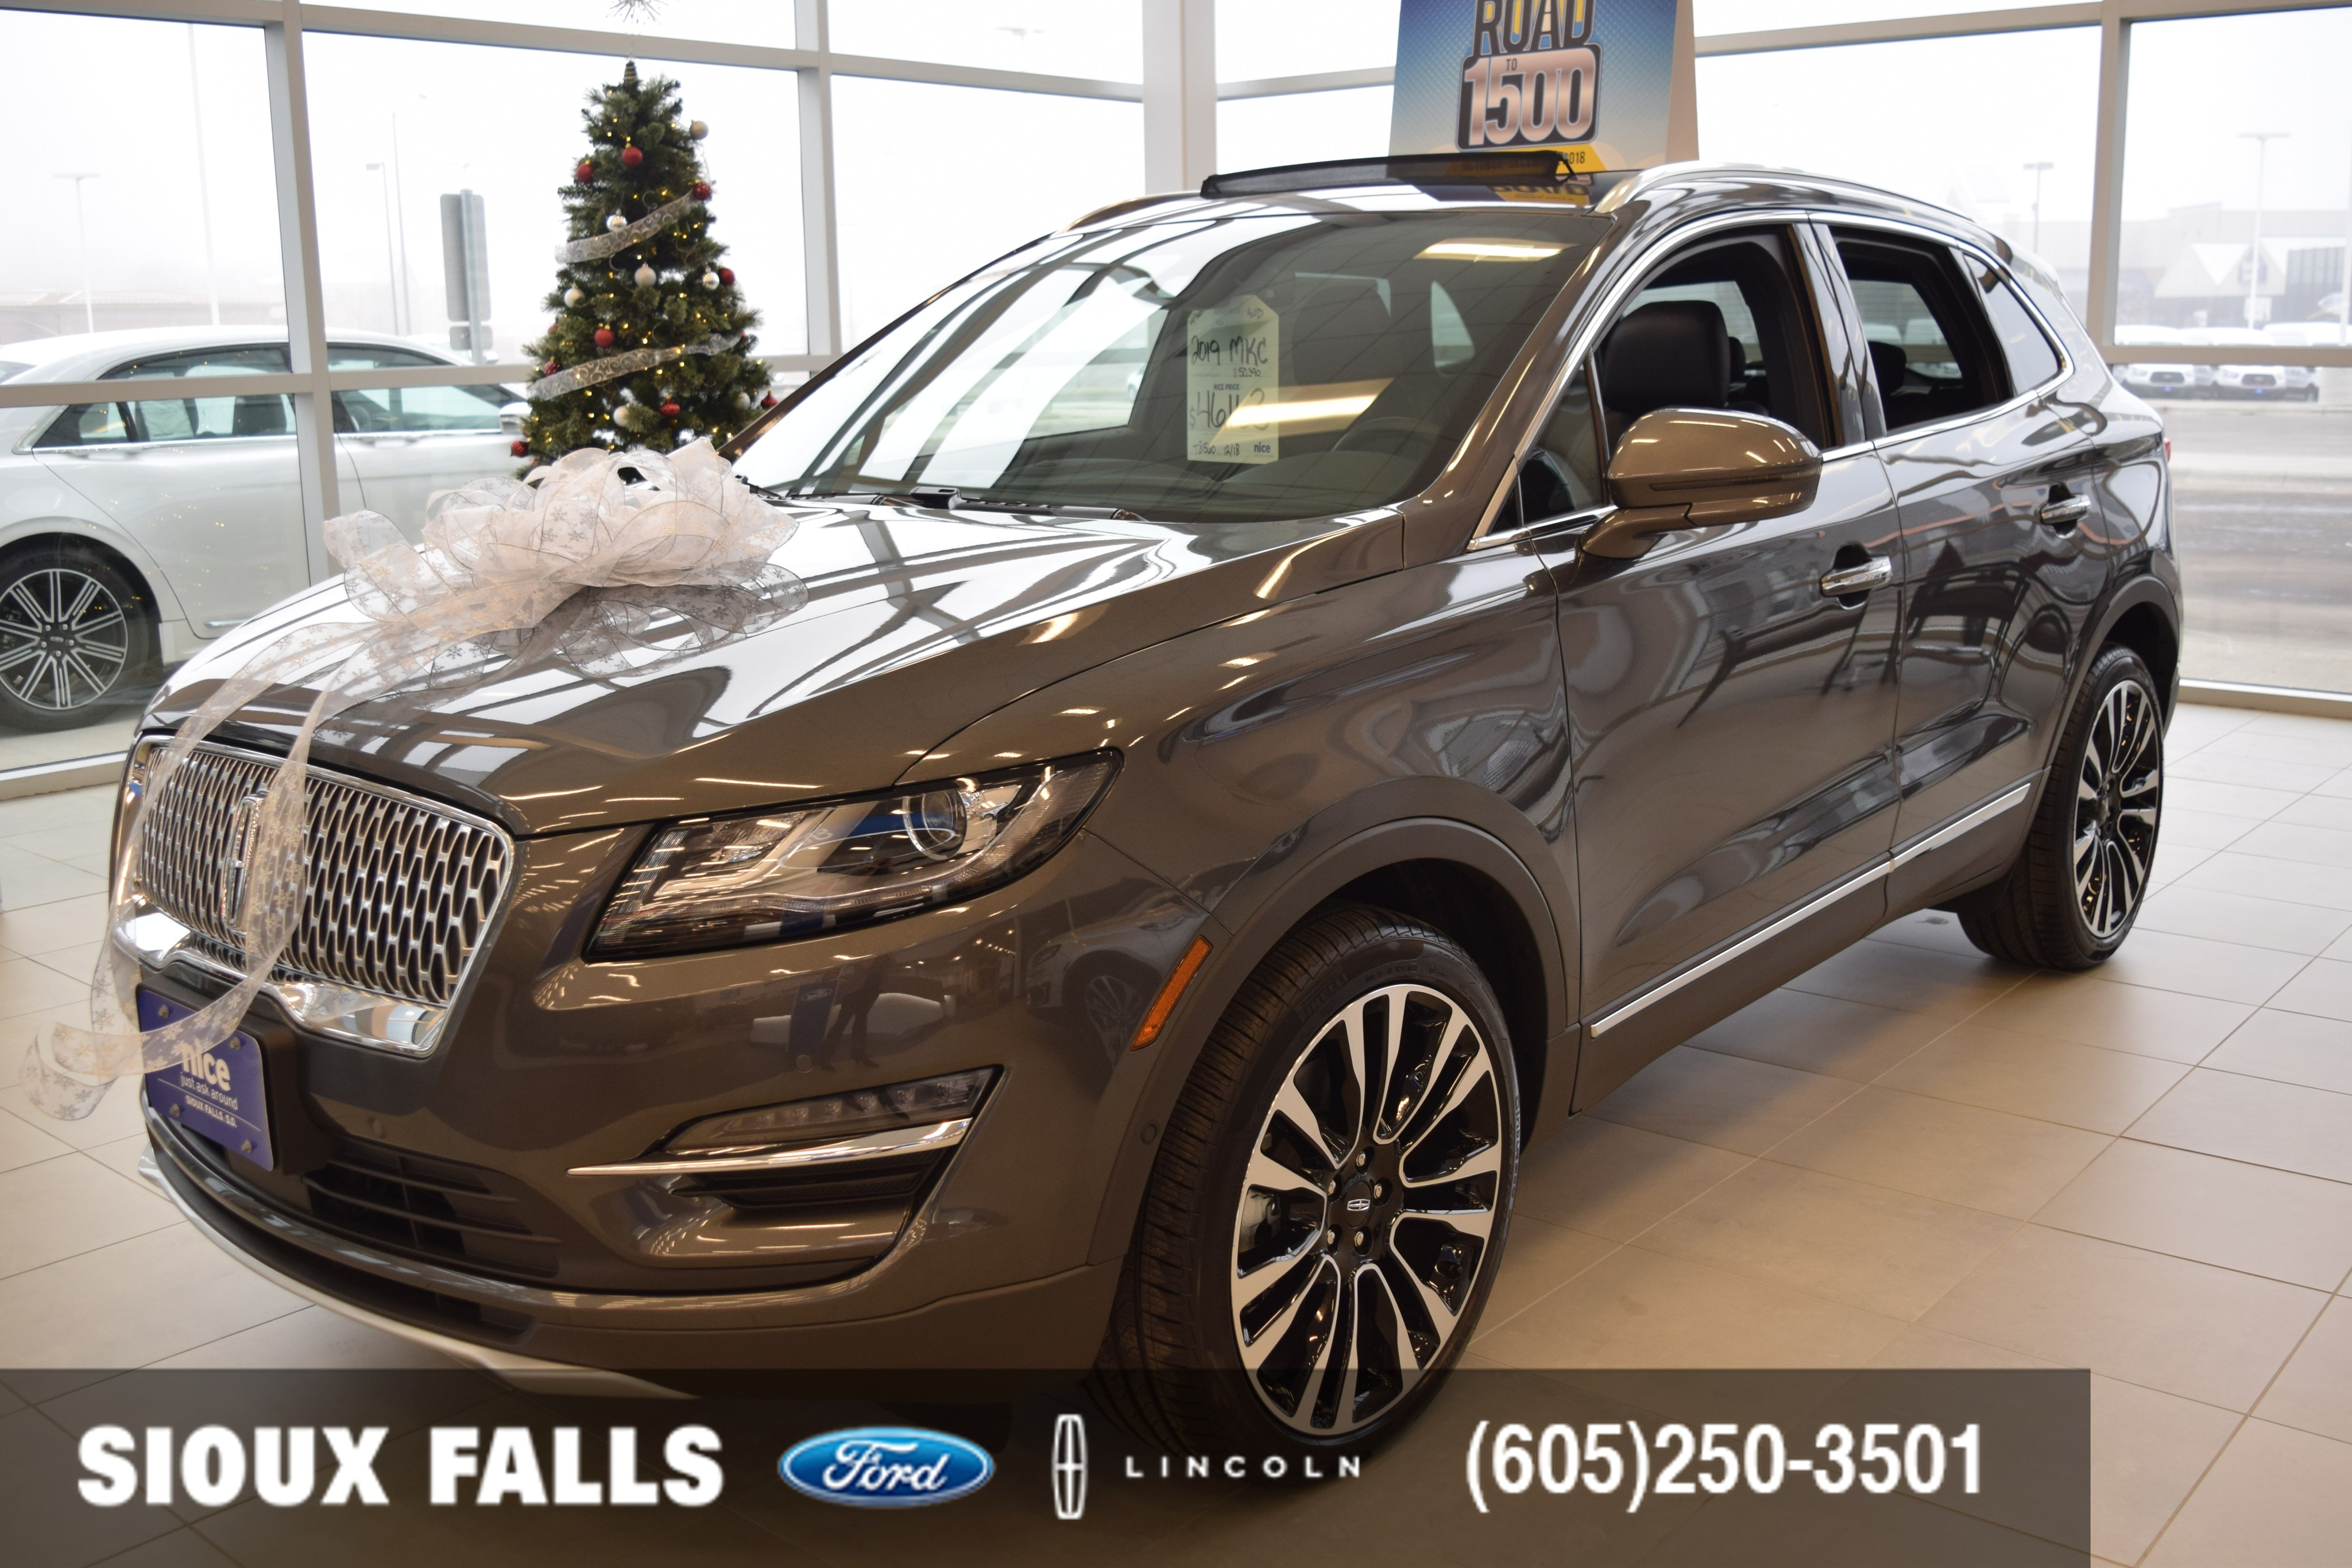 New 2019 Lincoln Mkc For Sale In Sioux Falls Sd T81560